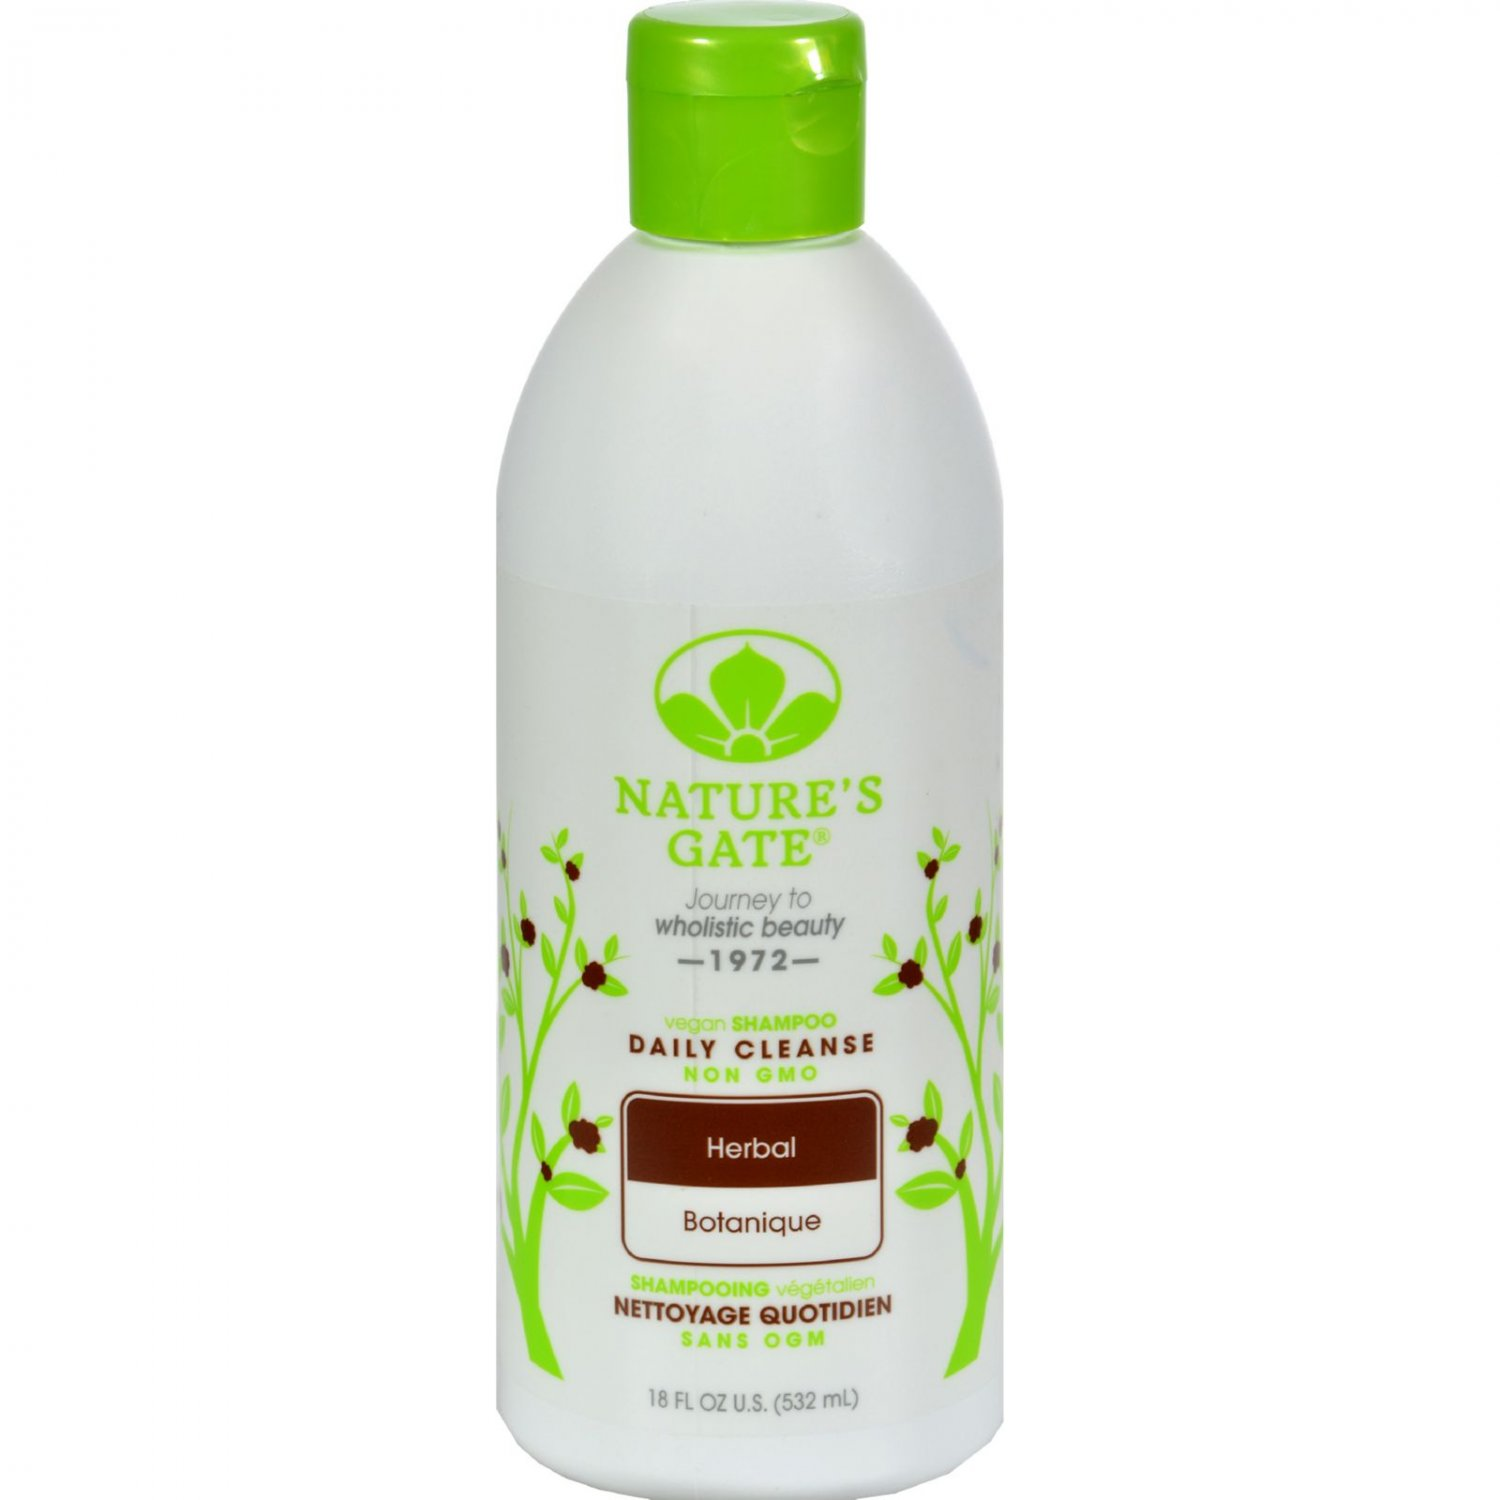 Nature's Gate Herbal Daily Cleansing Shampoo - Case of 12 - 18 oz